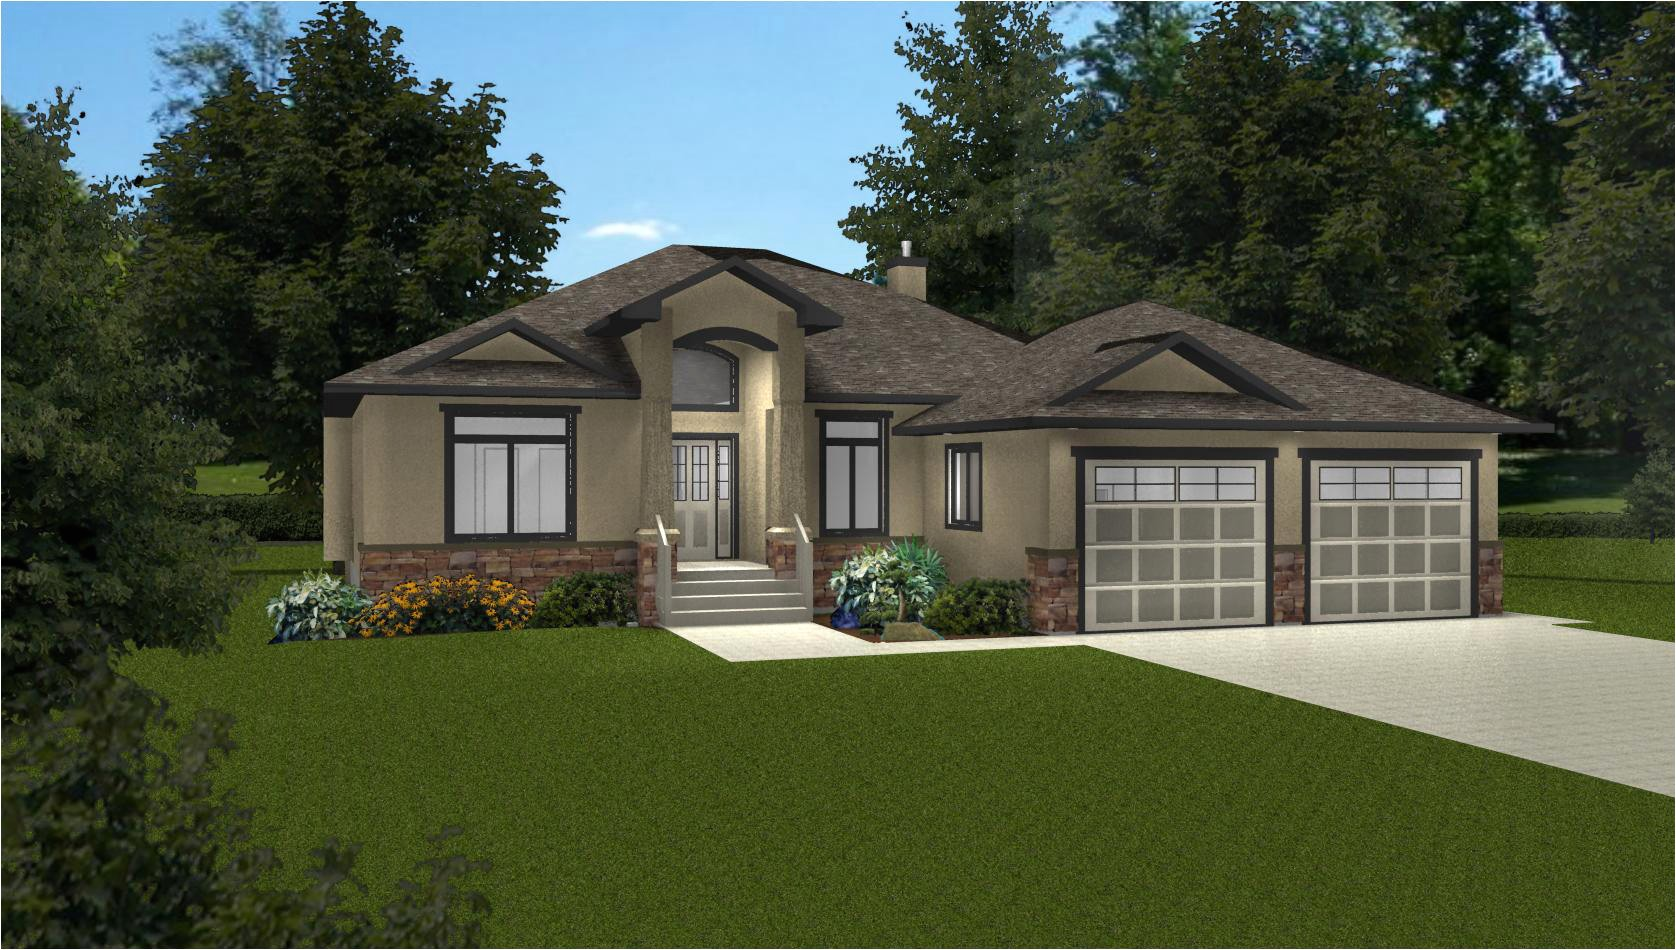 ranch style house plans canada inspirational contemporary house plans rustic plan interiors interior design